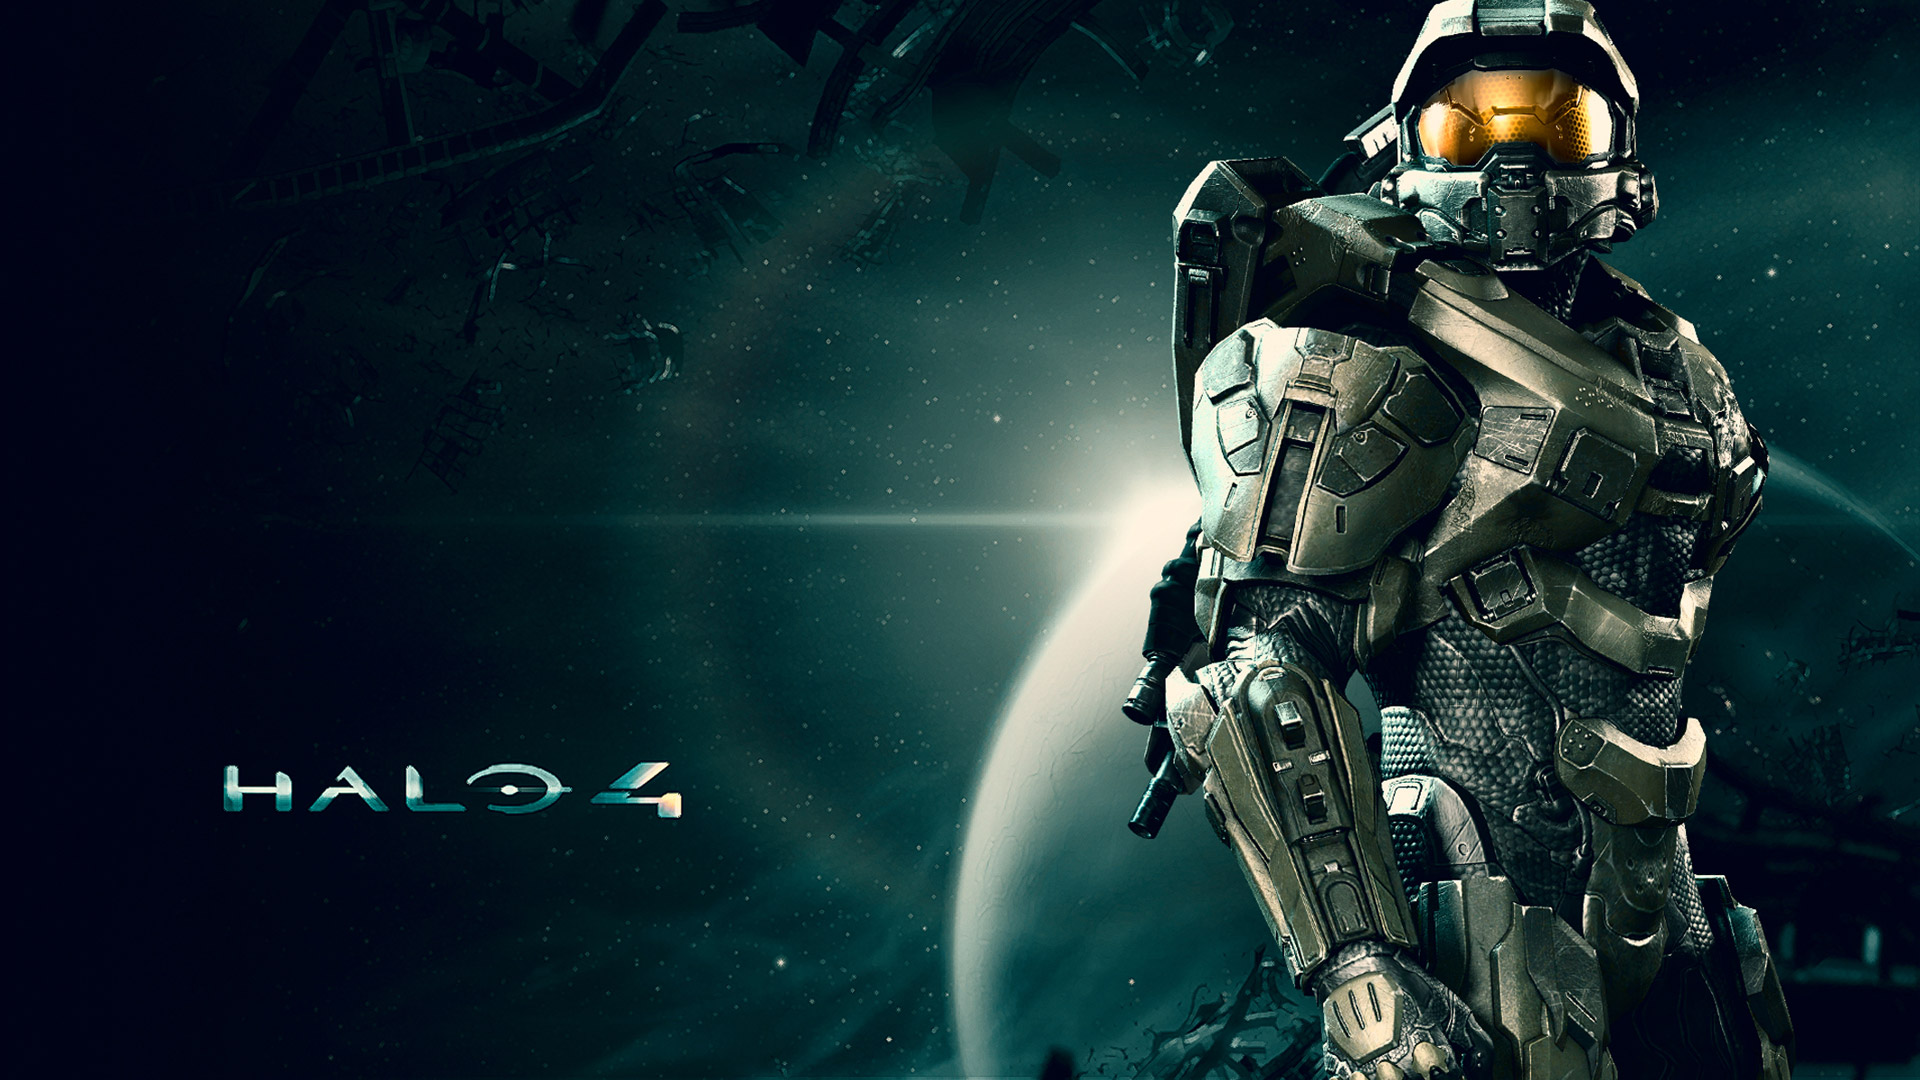 Halo Wallpaper In 1920x1080px